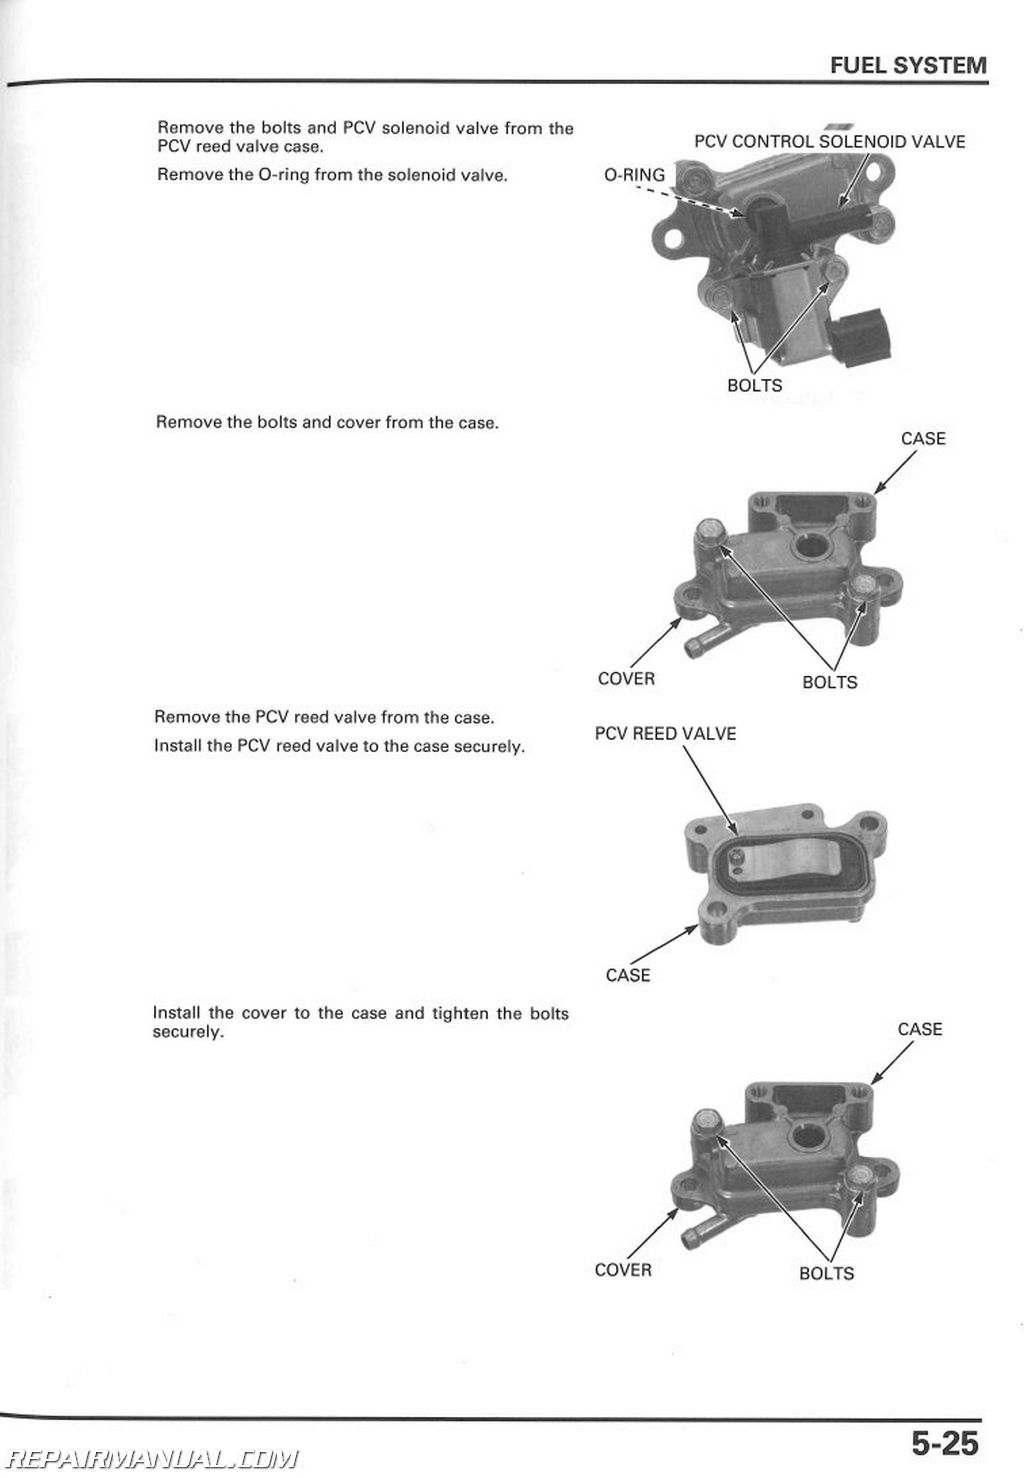 2008 Scion Xb Body Parts Buy Steroid Online Xd Engine Diagram Coolant Free Image For